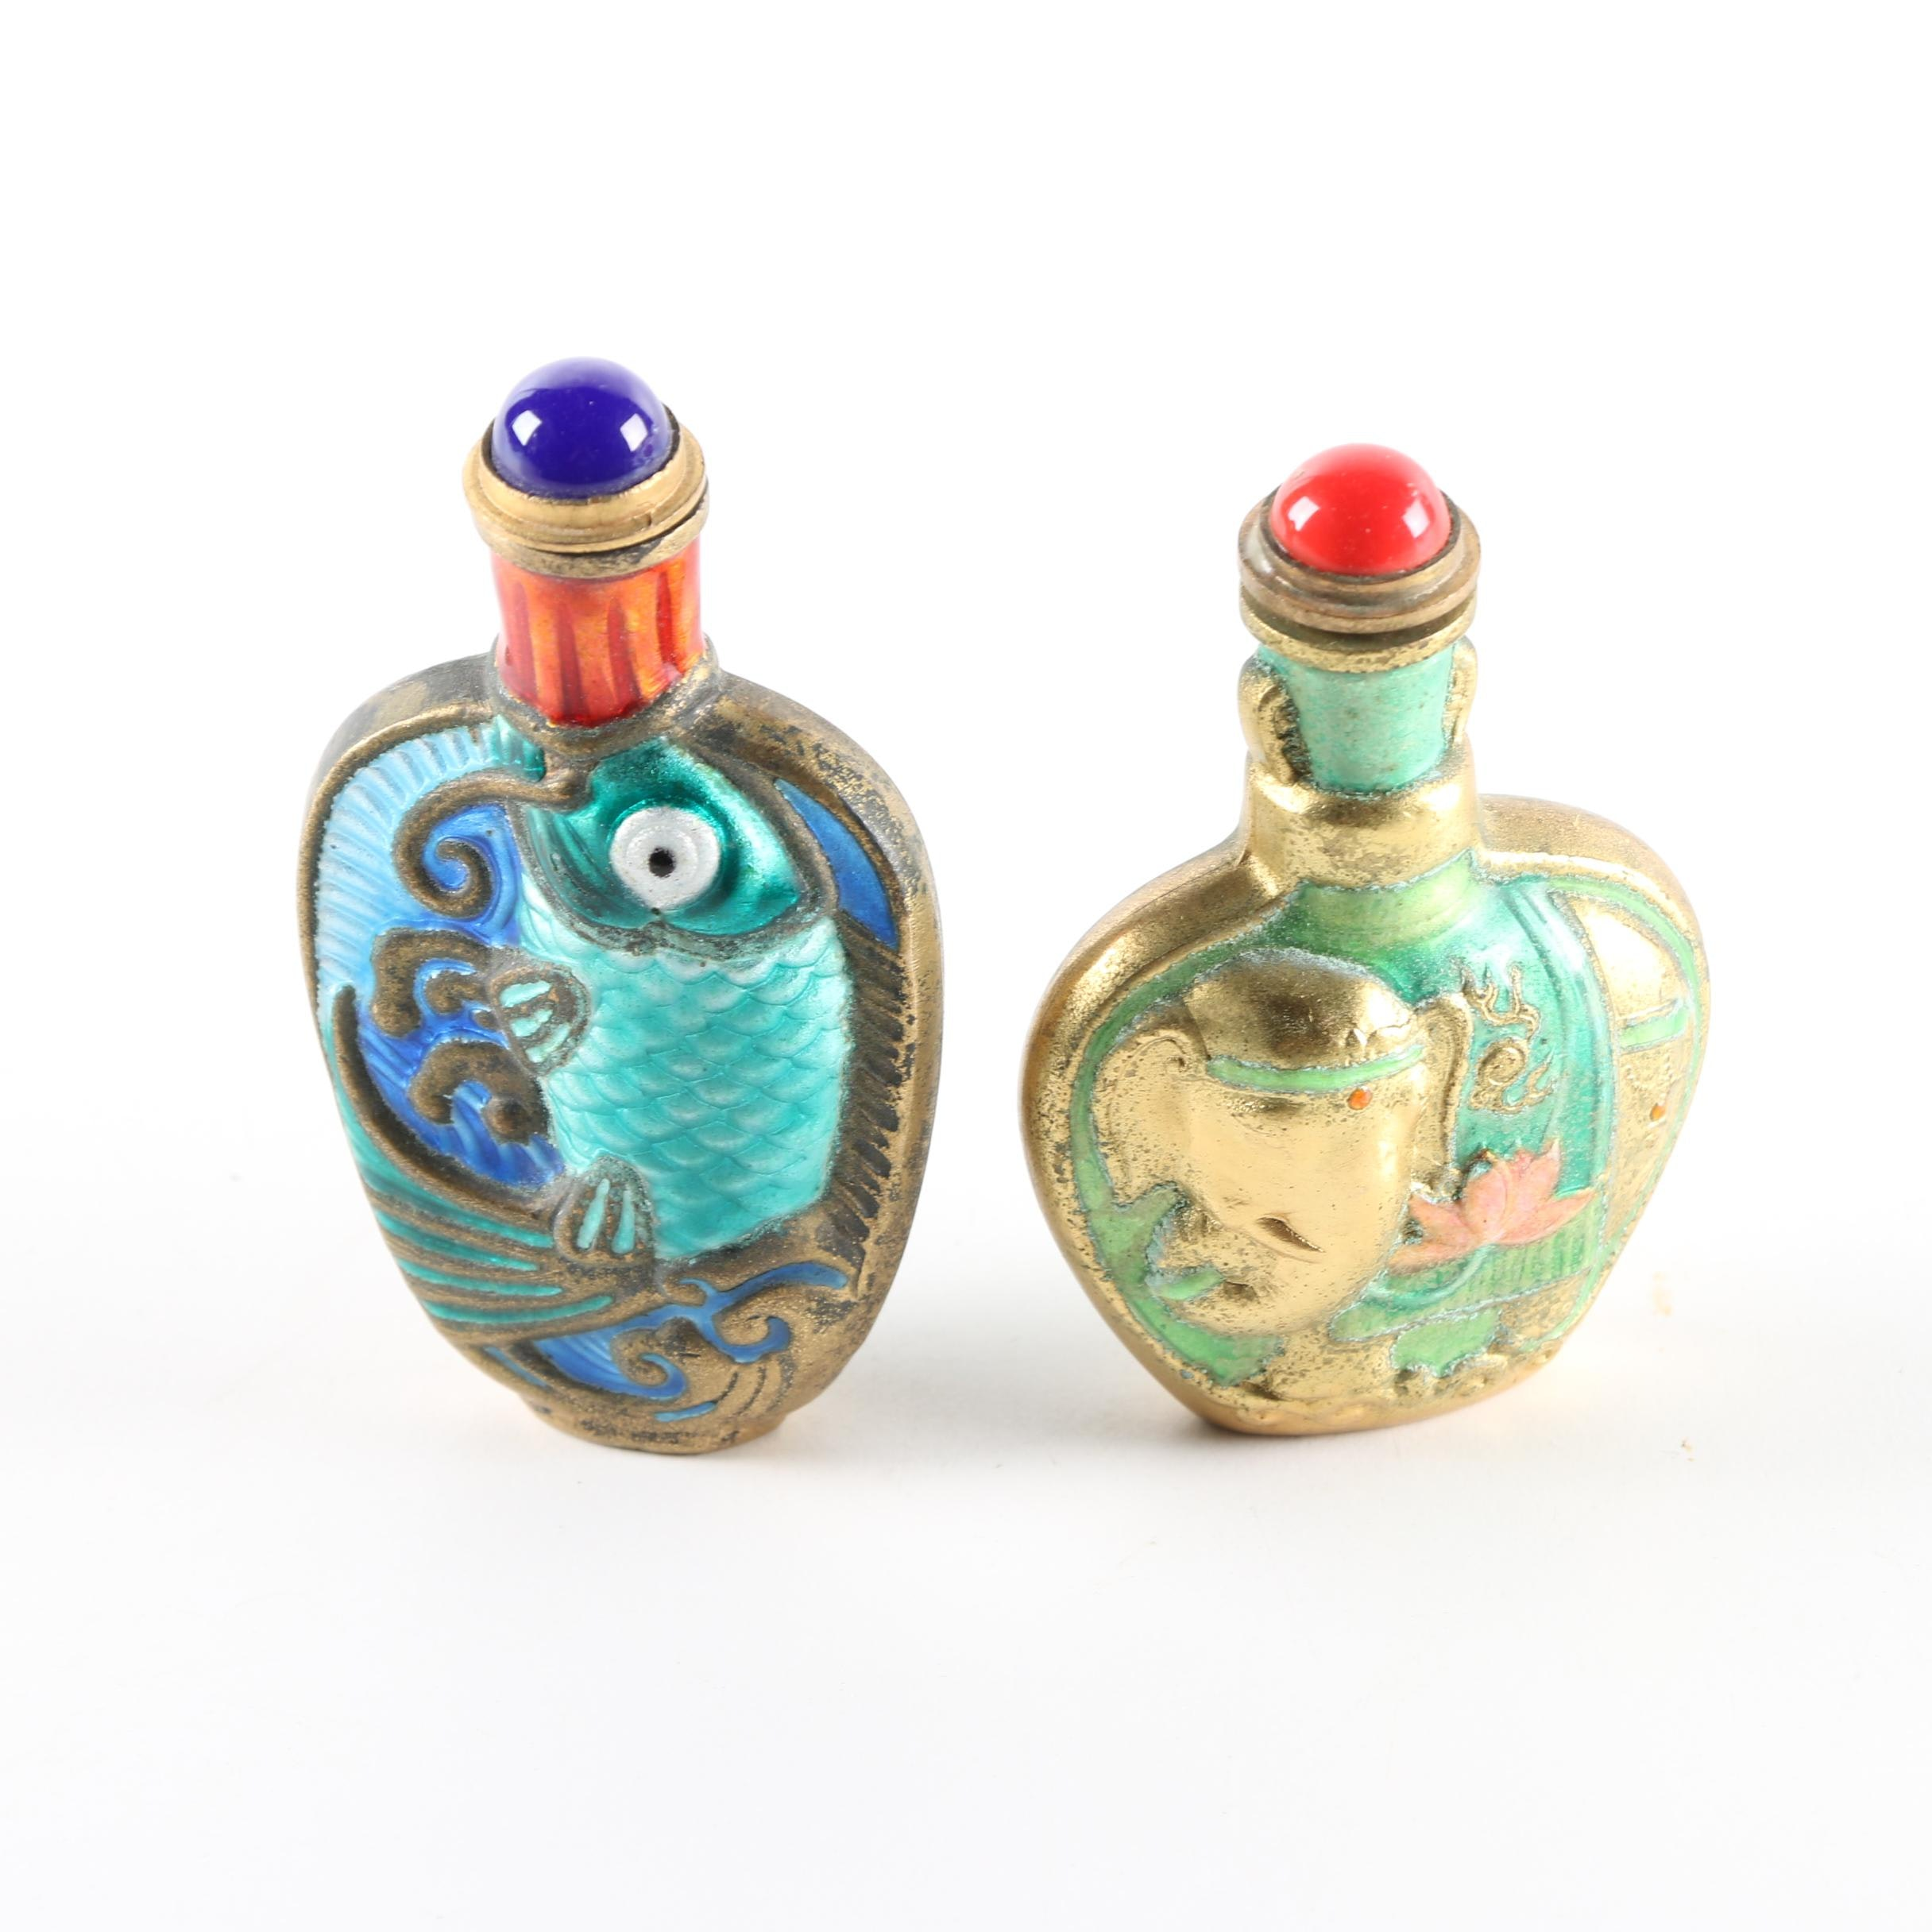 Pairing of Vintage Chinese Enameled Snuff Bottles